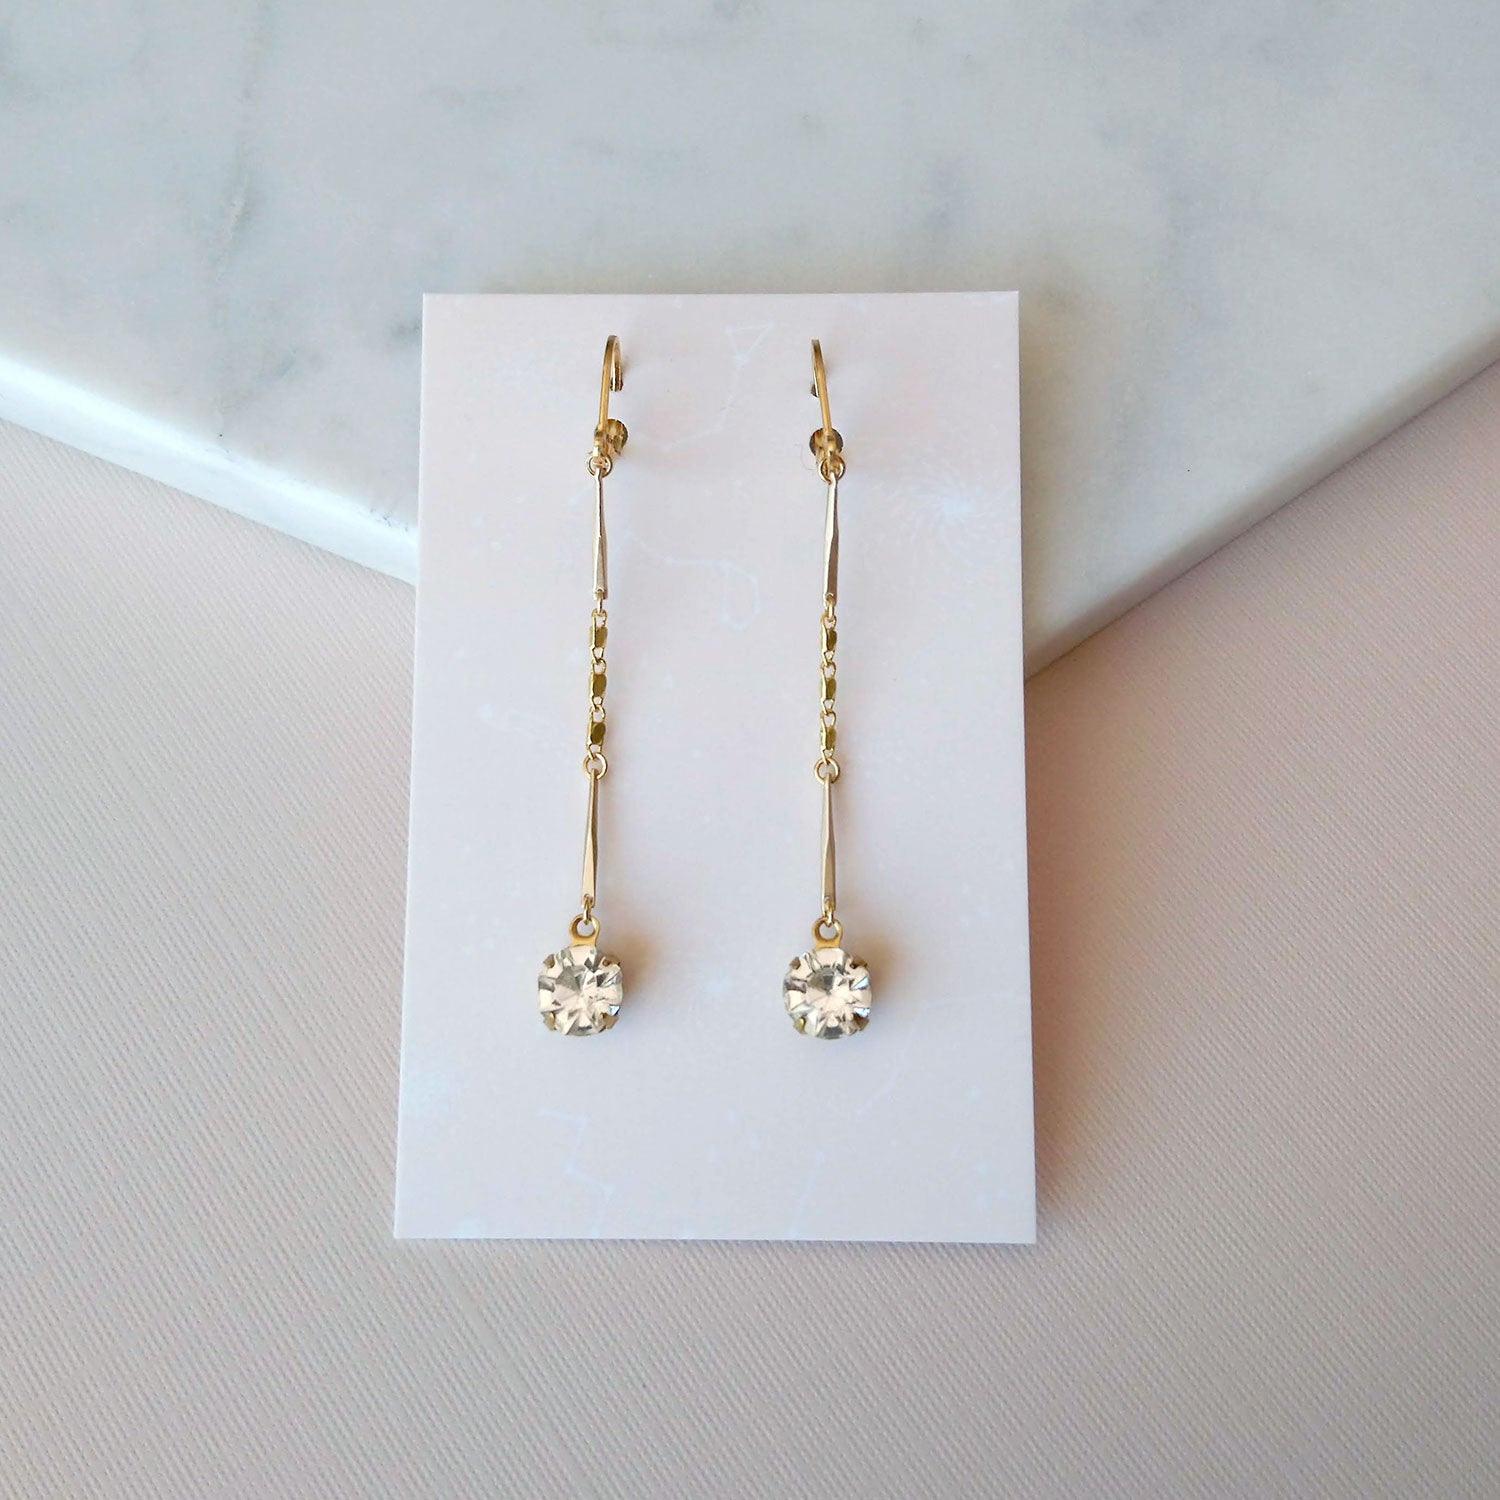 crystal and gold earrings for prom or bridesmaids